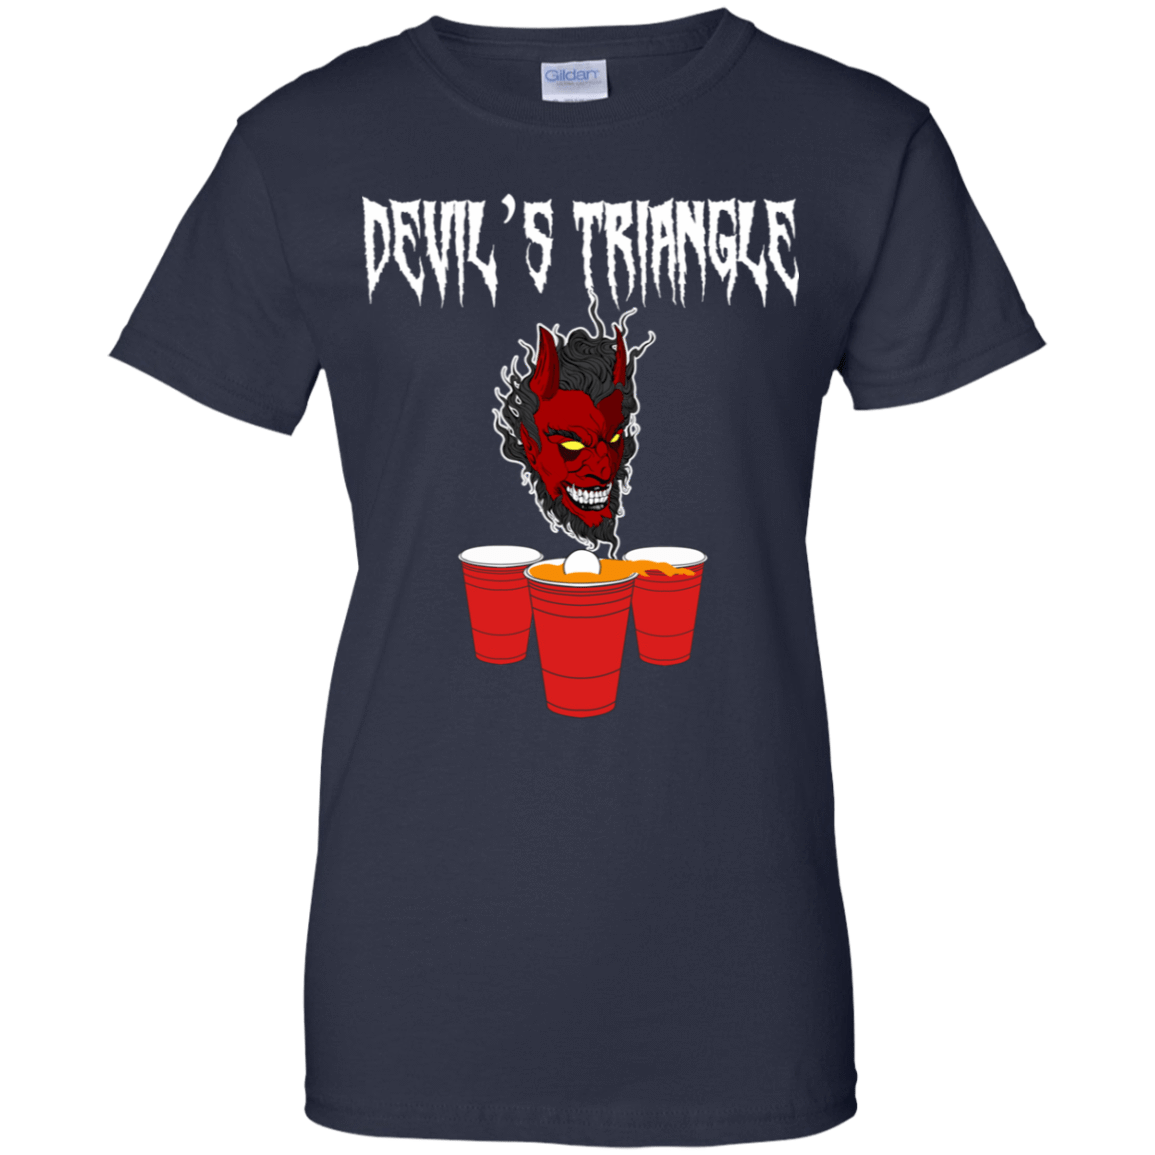 Devil's Triangle Drinking Game 939-9259-73890651-44765 - Tee Ript